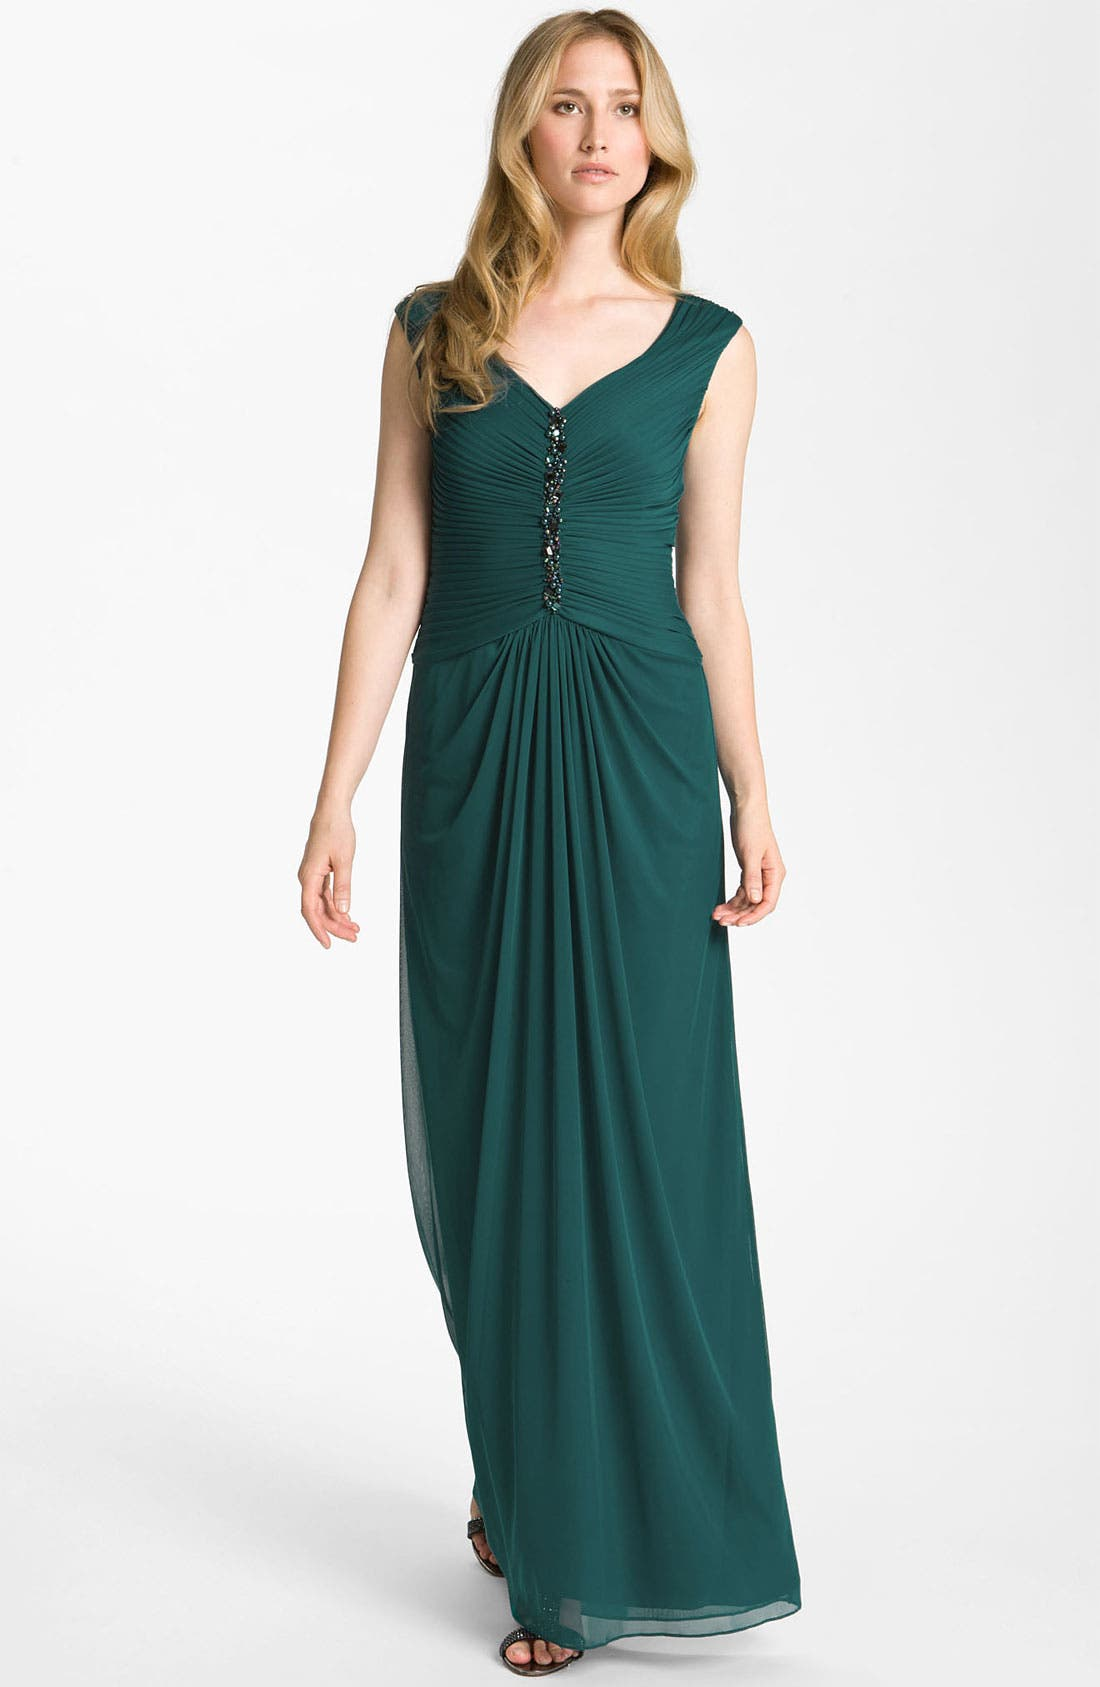 Alternate Image 1 Selected - Adrianna Papell Embellished Pleated Bodice Mesh Gown (Petite)